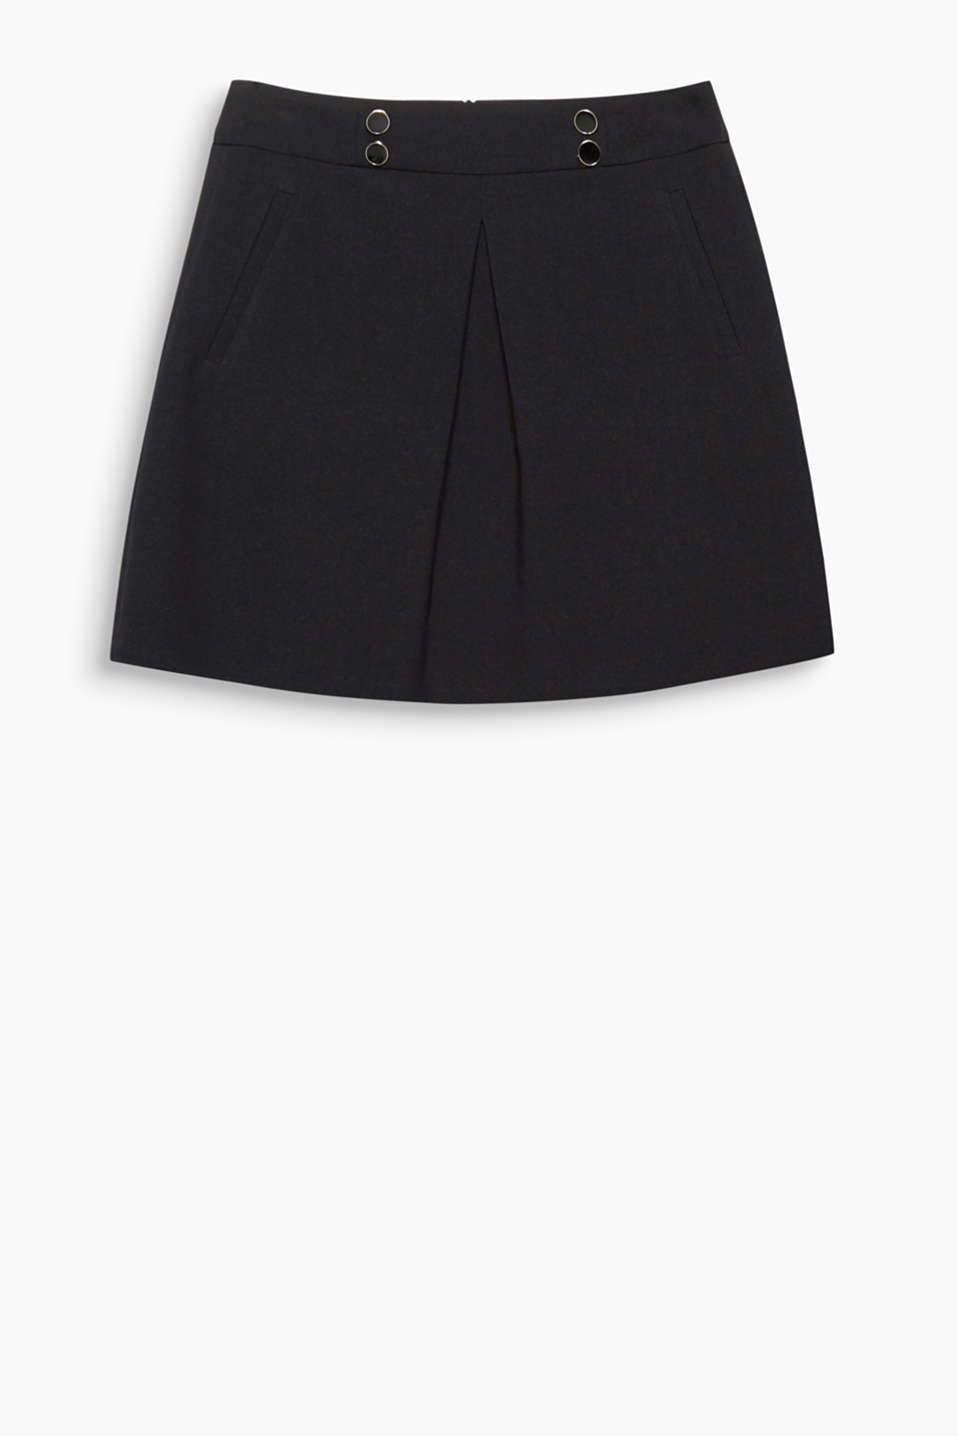 Very retro: This flared mini skirt boasts an inverted pleat at the centre front and decorative buttons at the waistband.